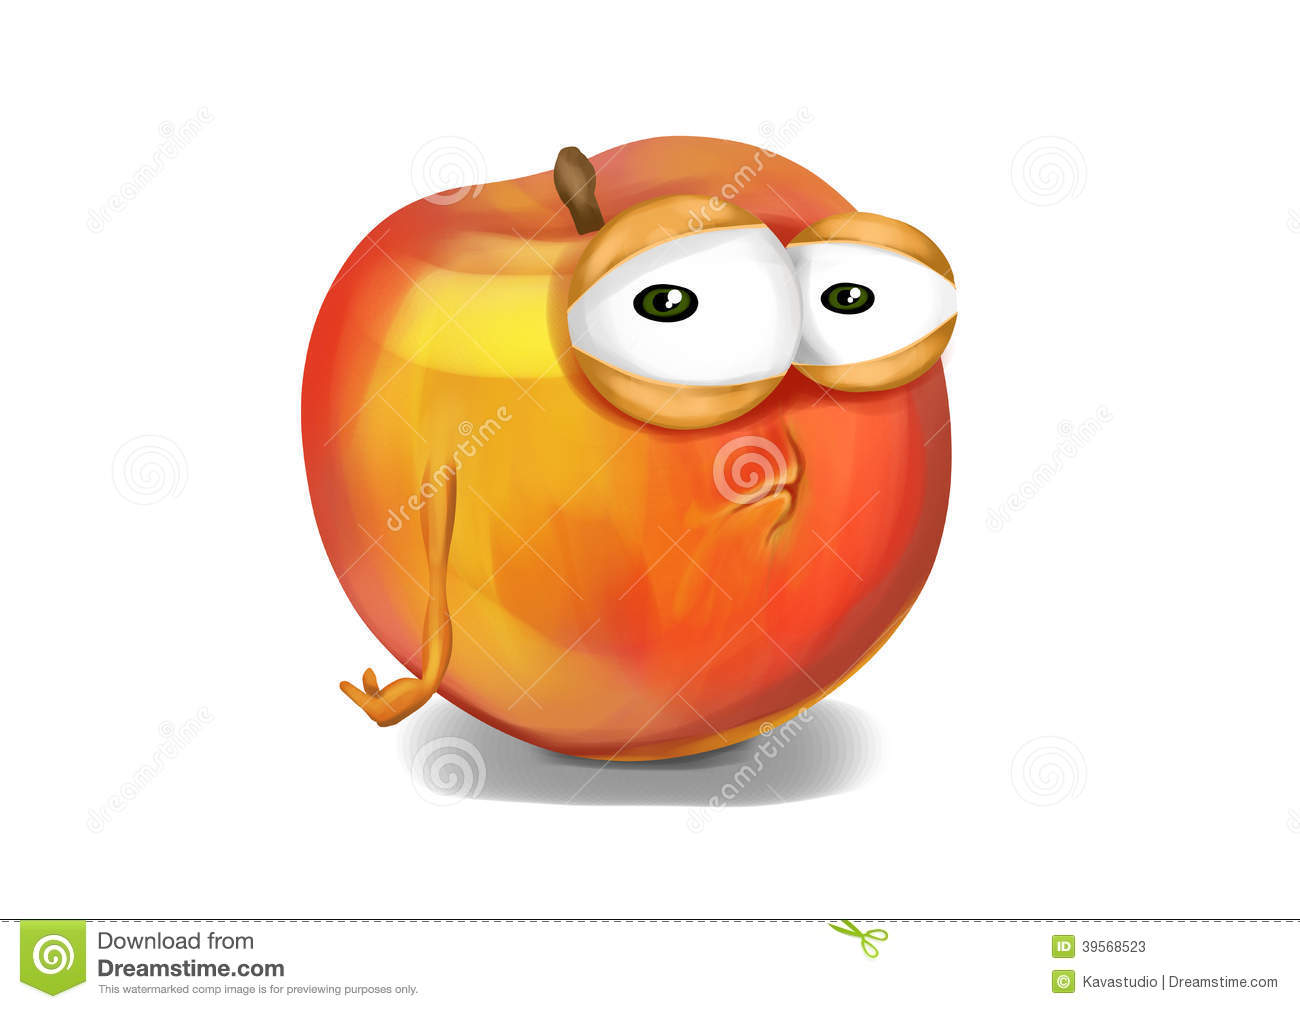 Disappointed Face Clipart Sad nectarine  a disappointed